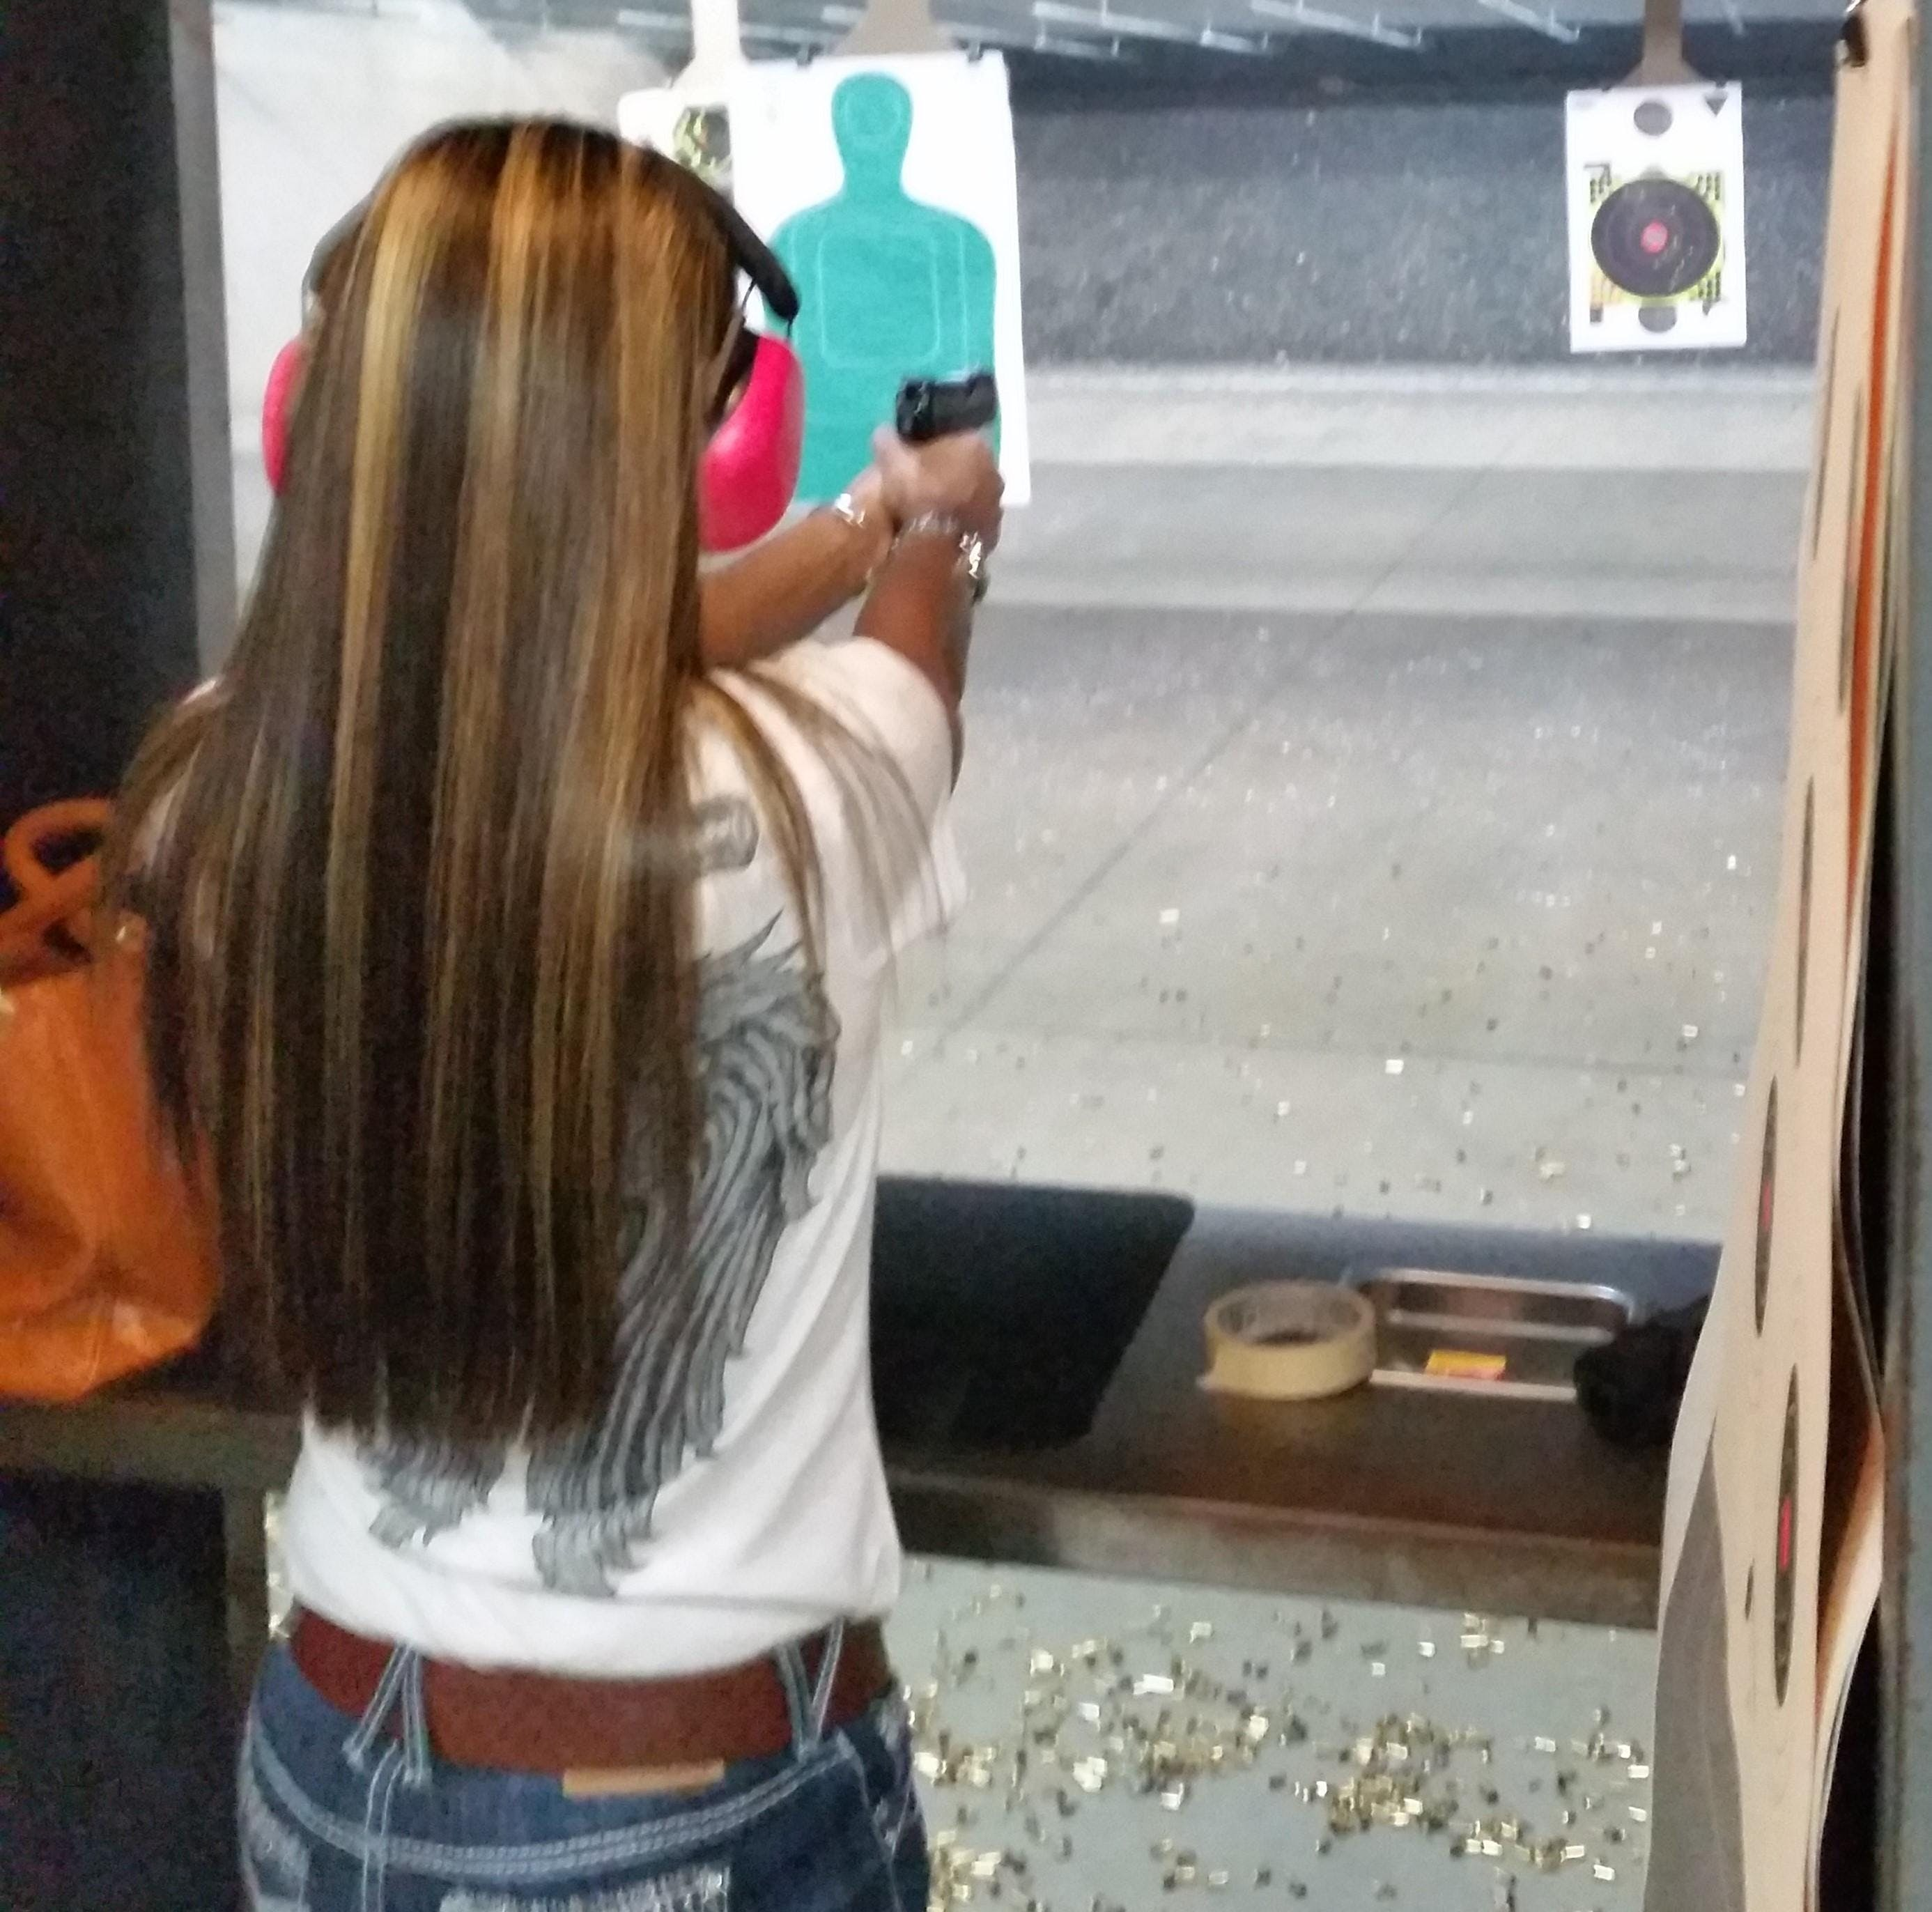 Teachers ~ Educators Special Firearm Training